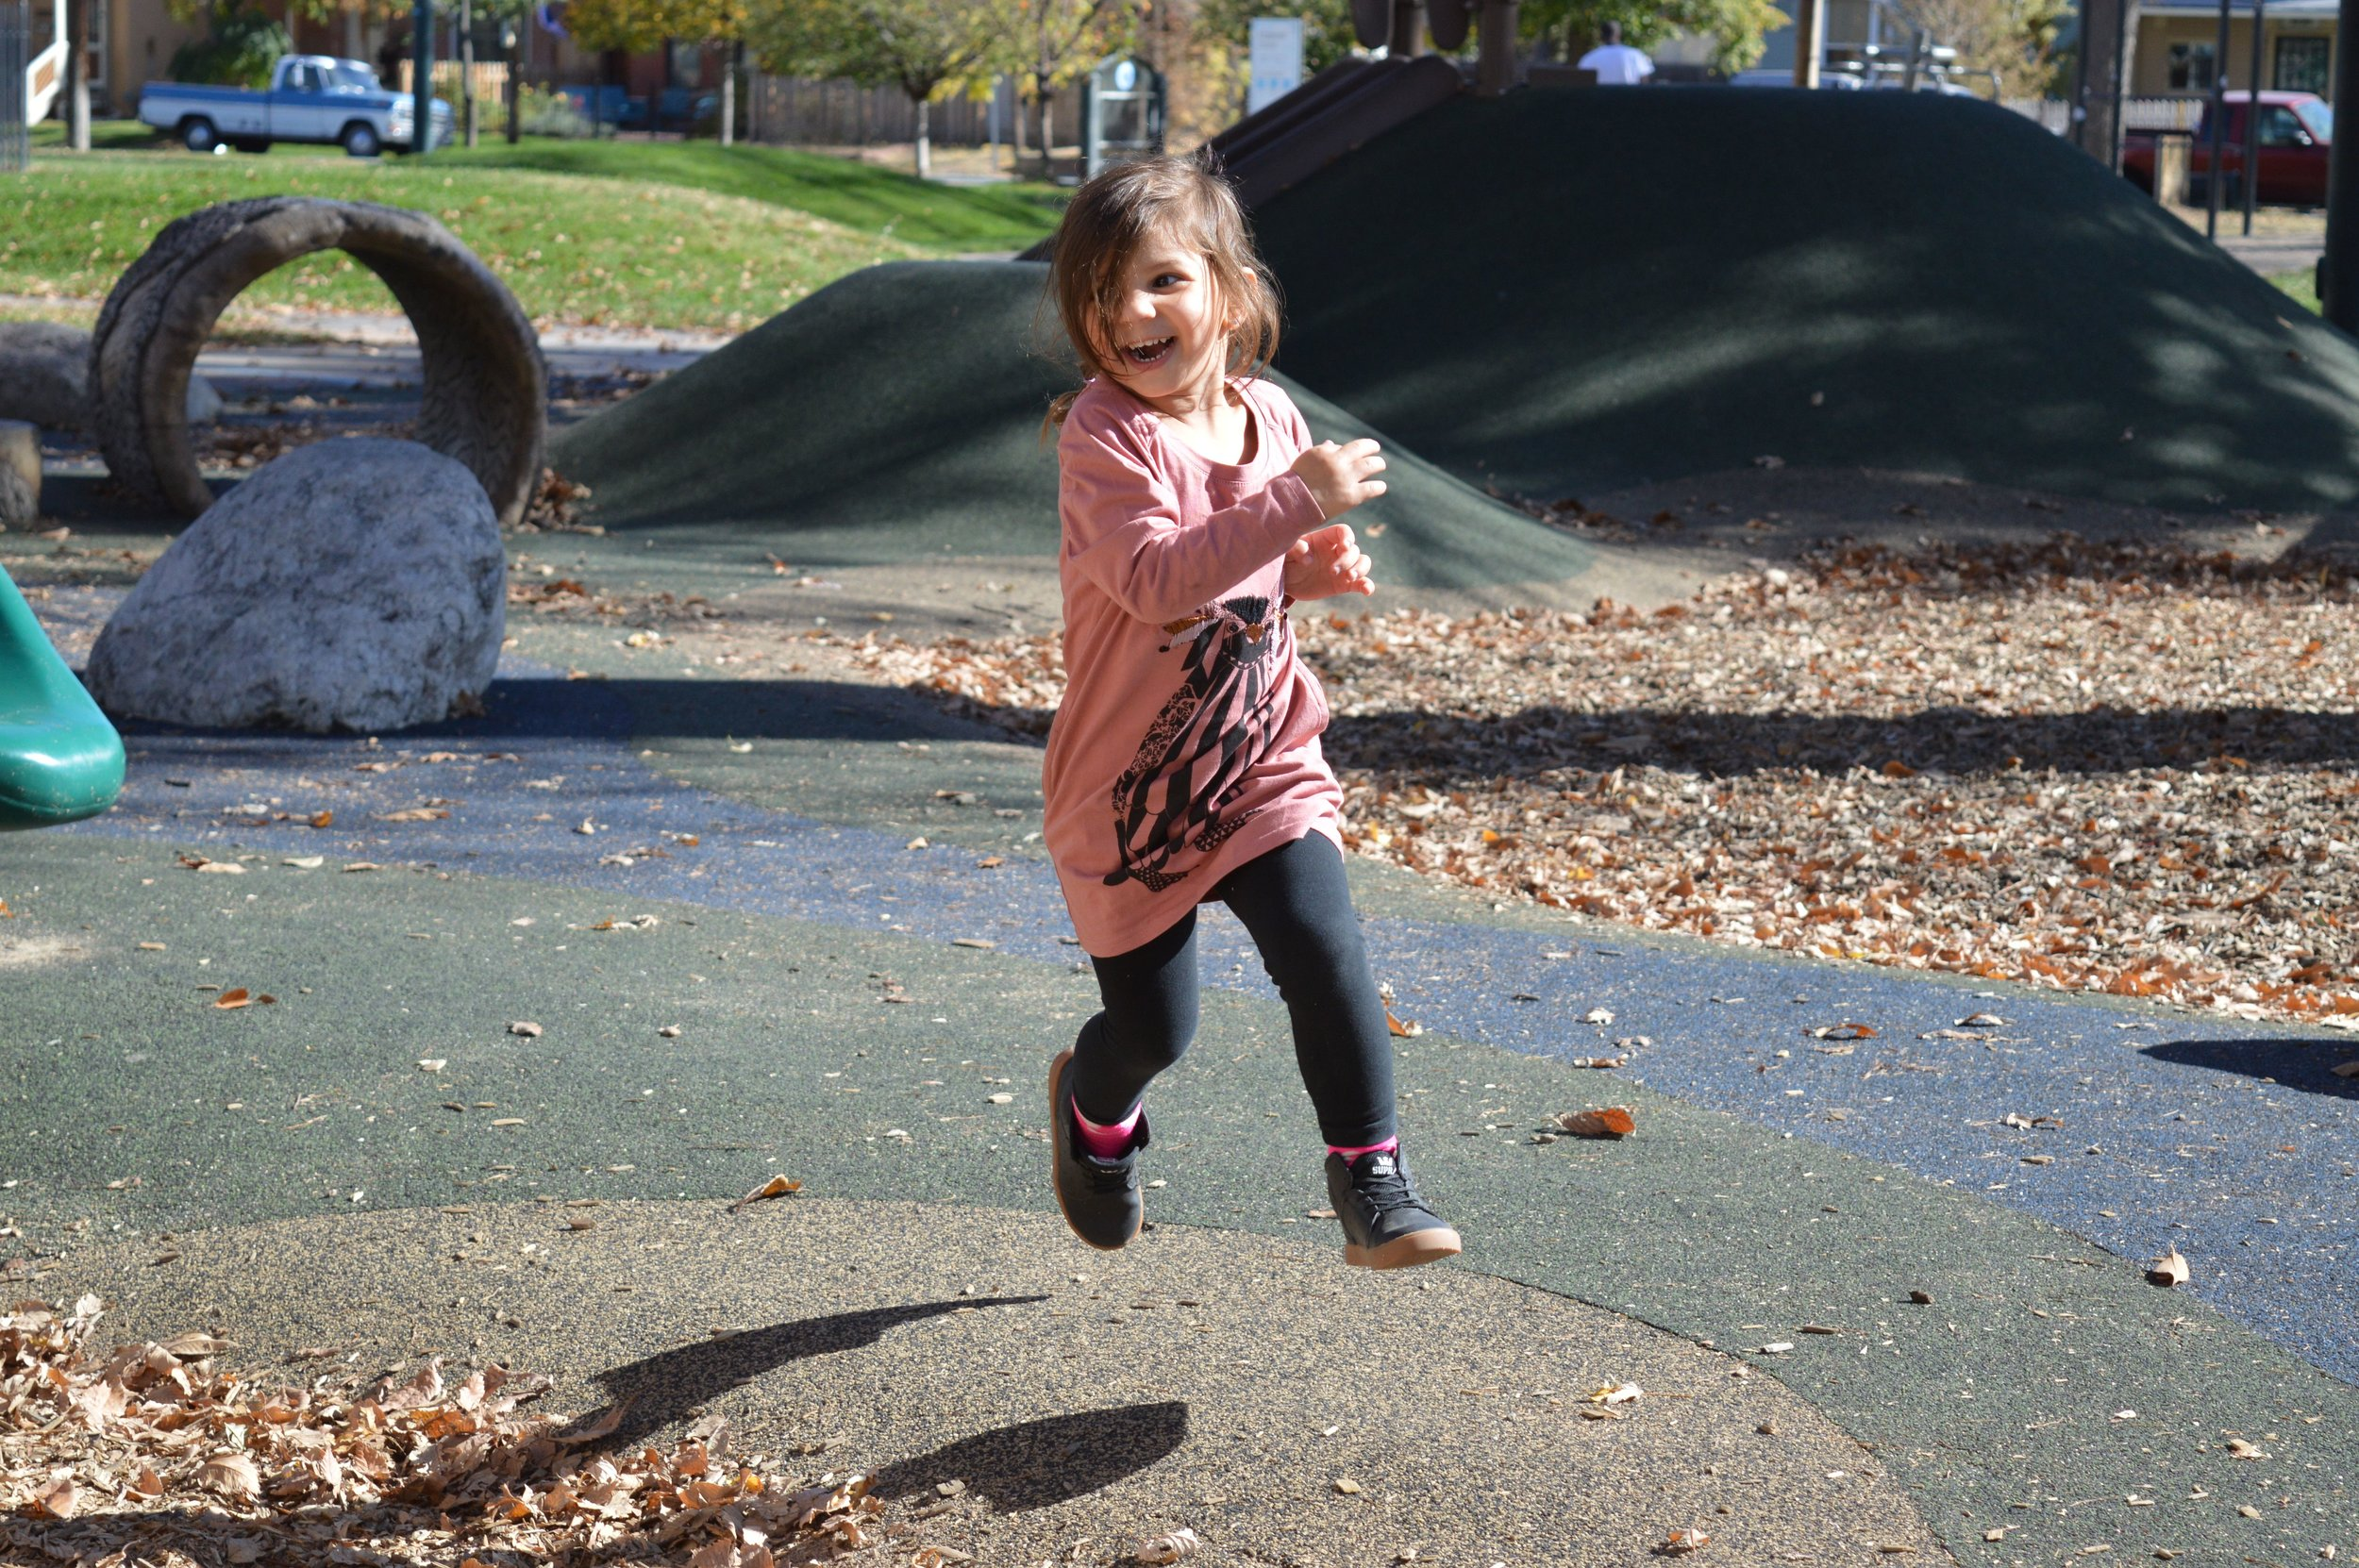 Remy running at park nov 2 2016.jpg